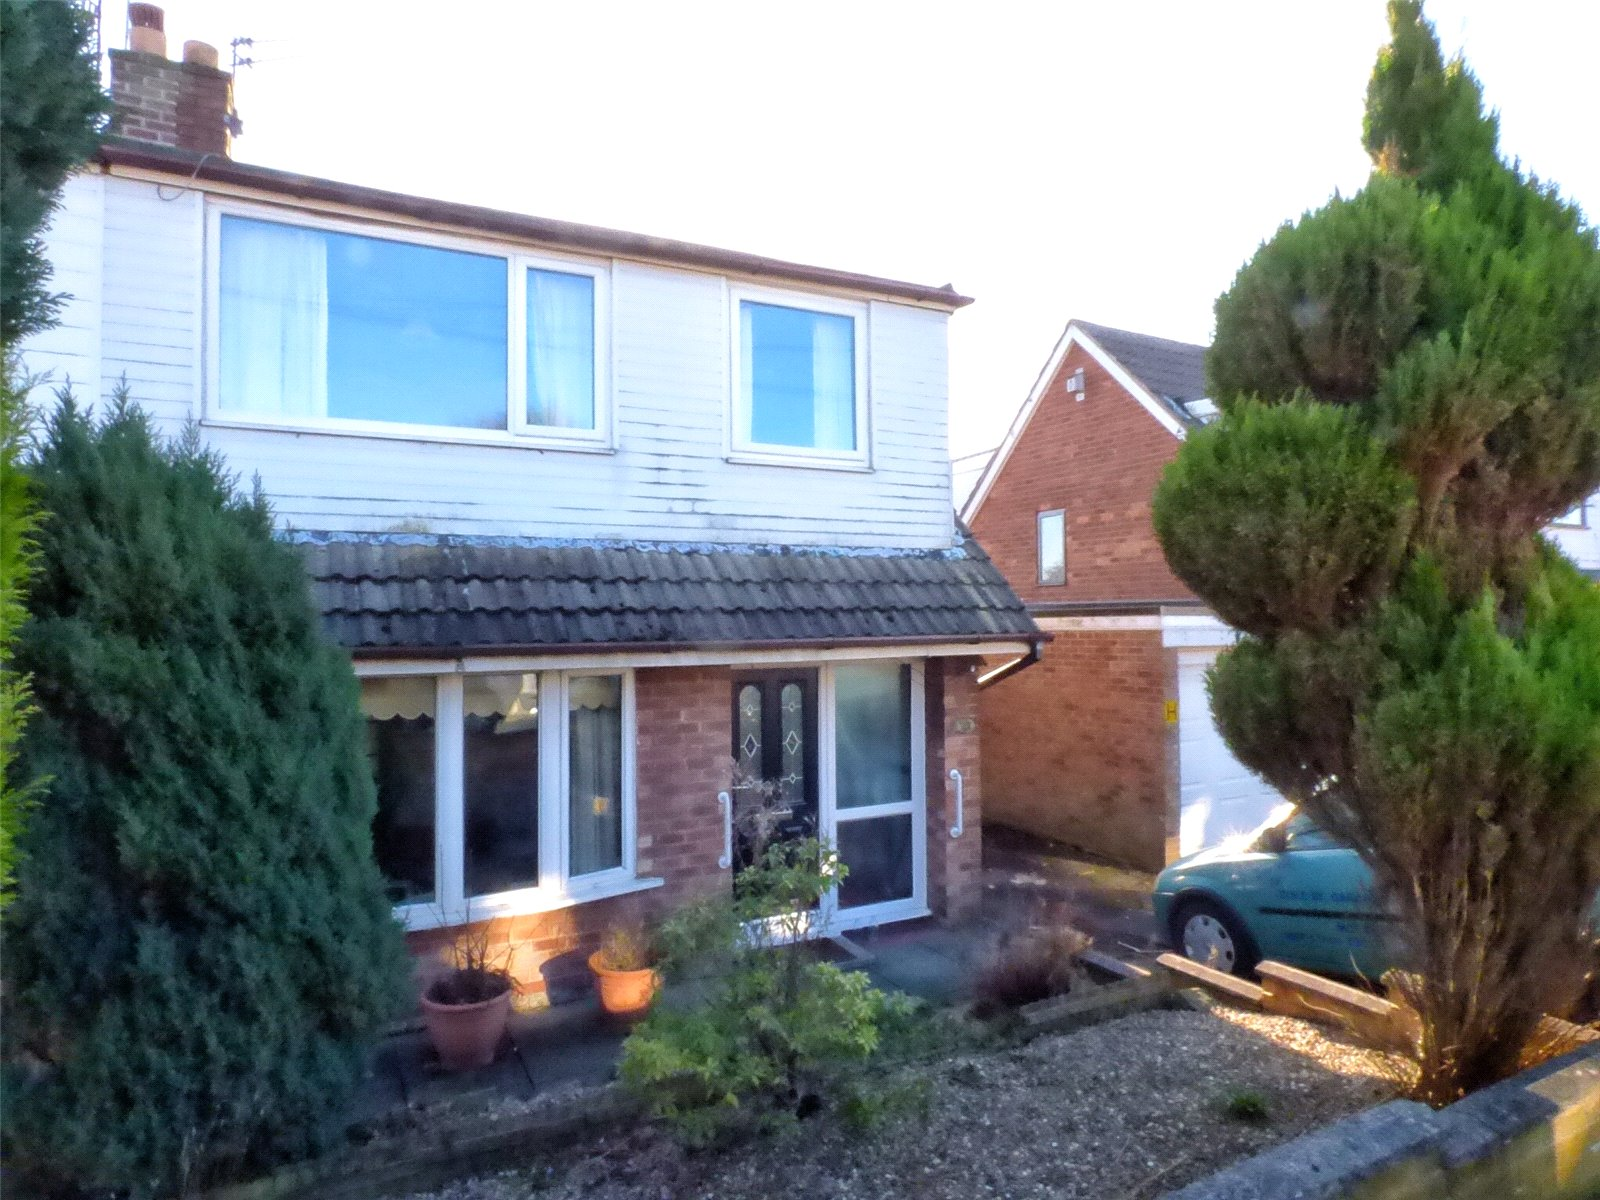 3 Bedrooms Semi Detached Bungalow for sale in Grasmere Road, Royton, Oldham, Greater Manchester, OL2